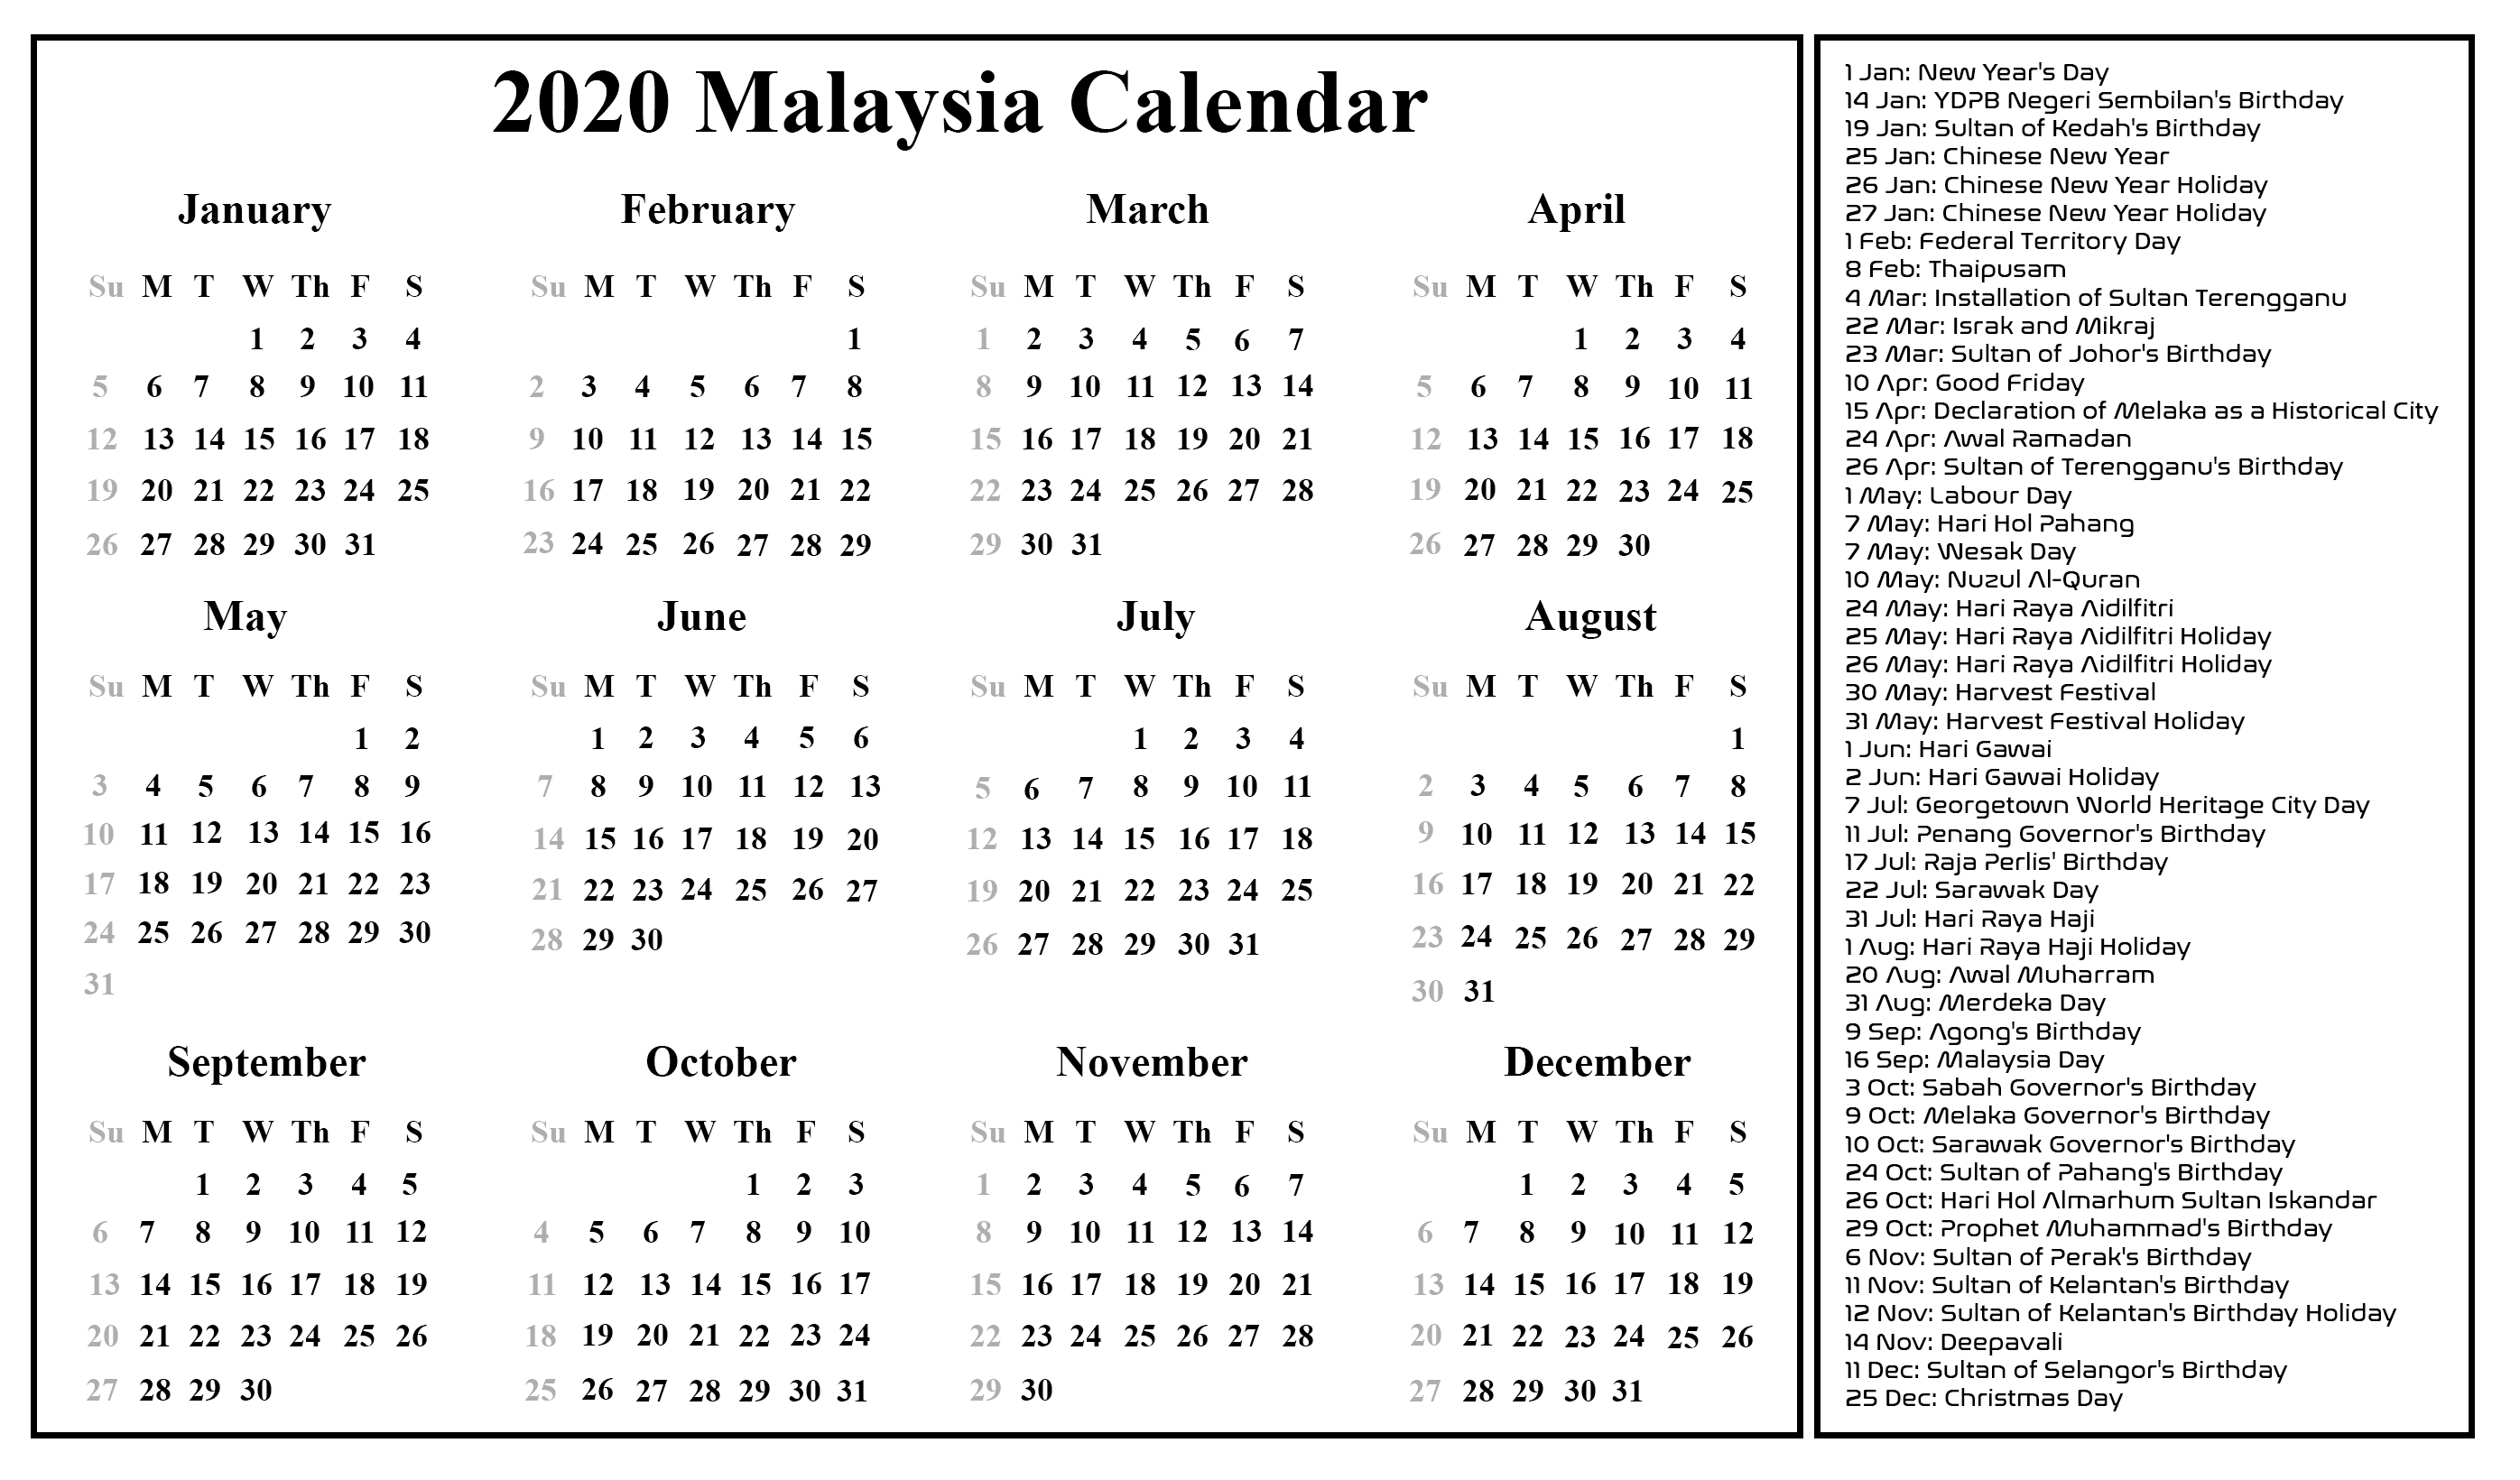 Free Blank Malaysia Calendar 2020 In Pdf, Excel & Word-Calendar For 2020 Printable With Legal Holidays